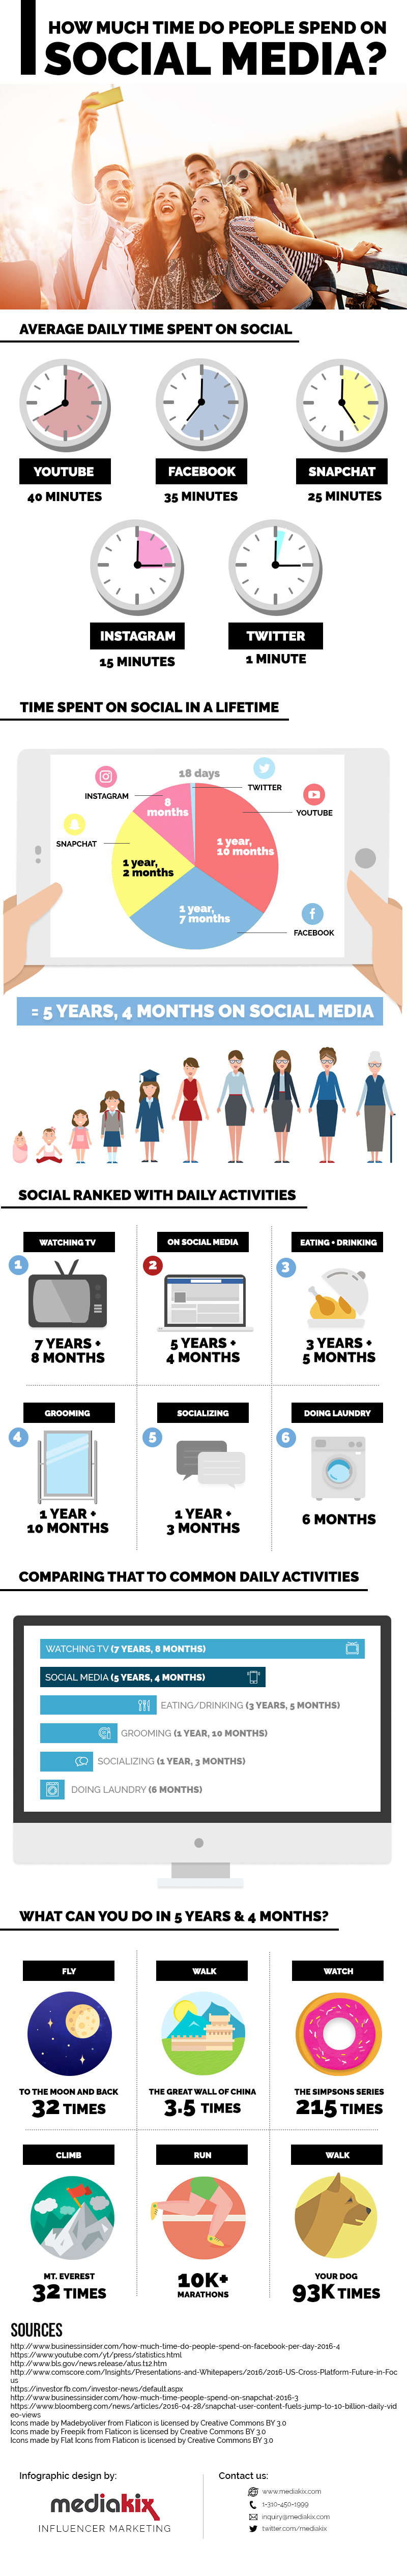 Quelle: http://www.socialmediatoday.com/marketing/how-much-time-do-people-spend-social-media-infographic